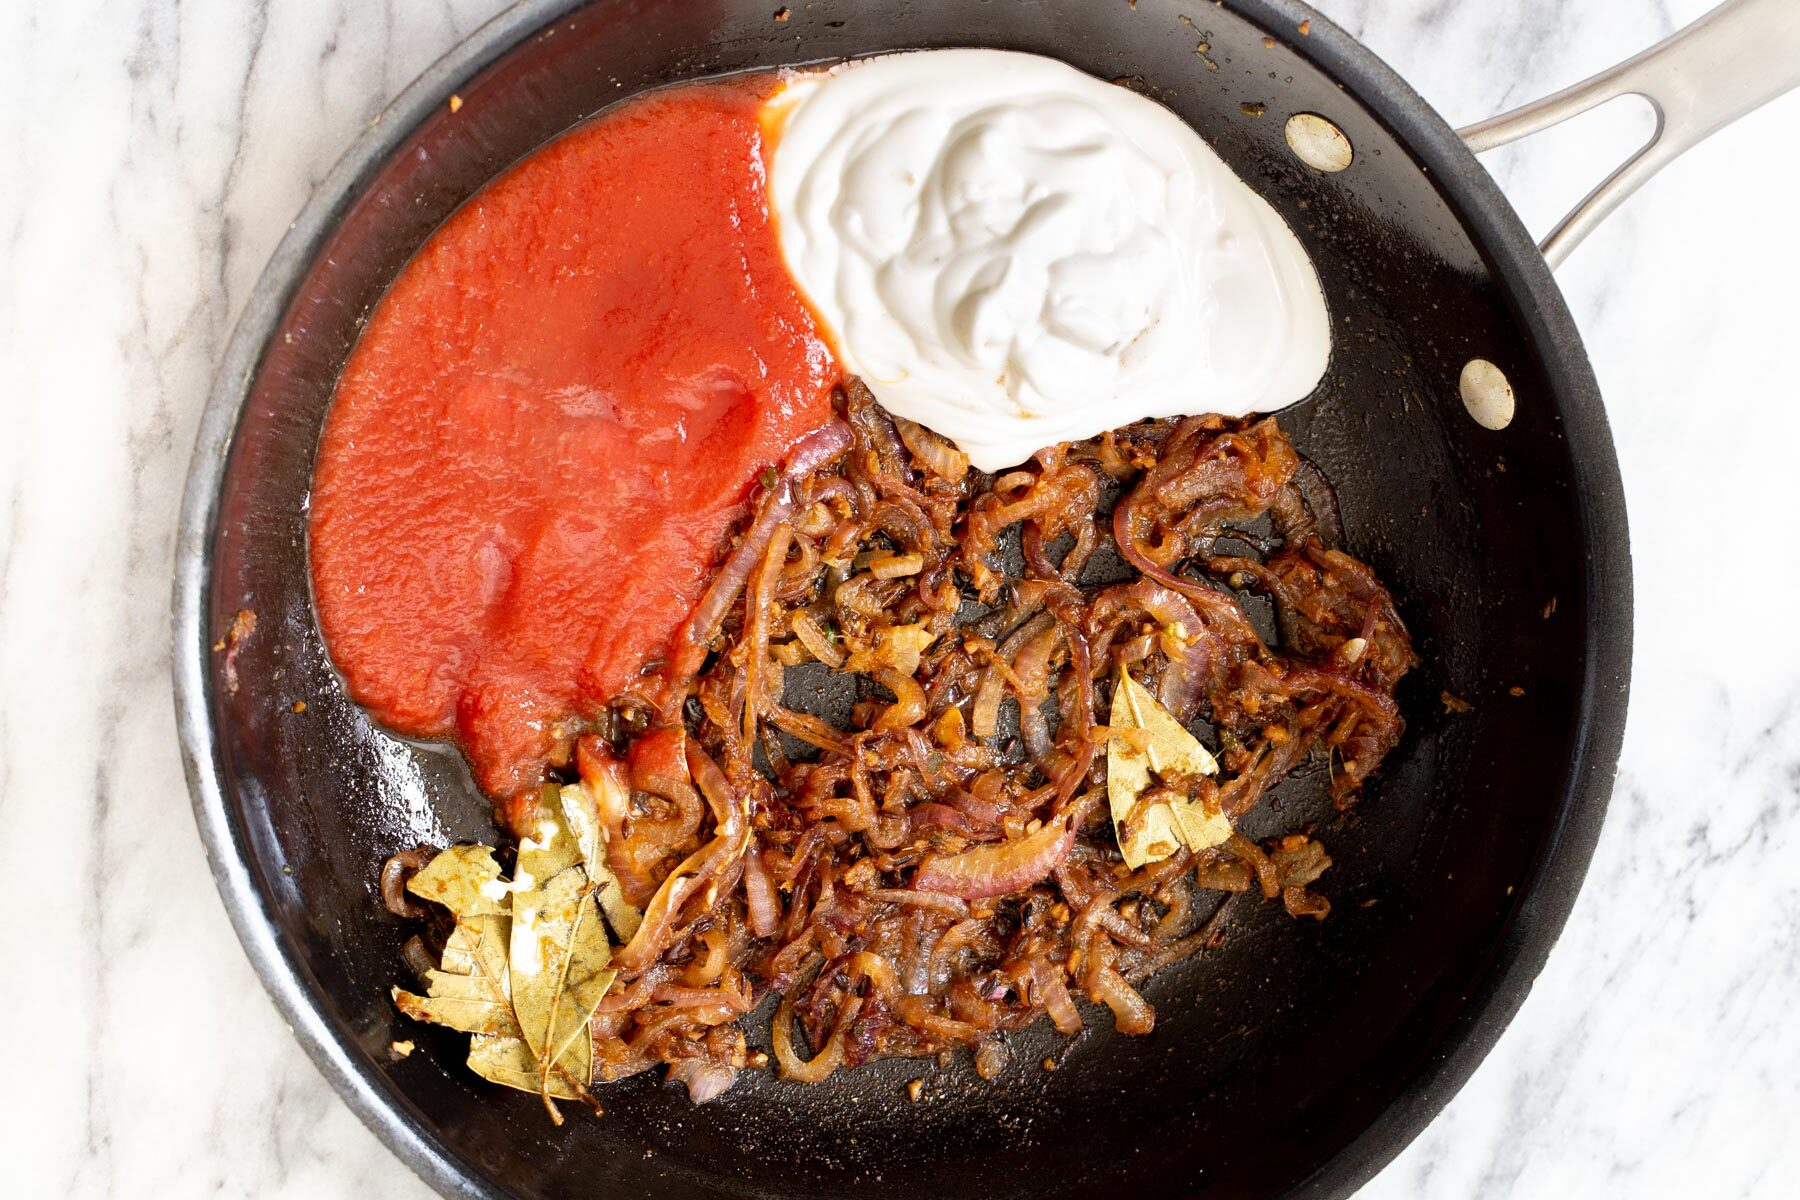 tomato puree and yogurt being added to make Indian gravy in a sauteeing pan